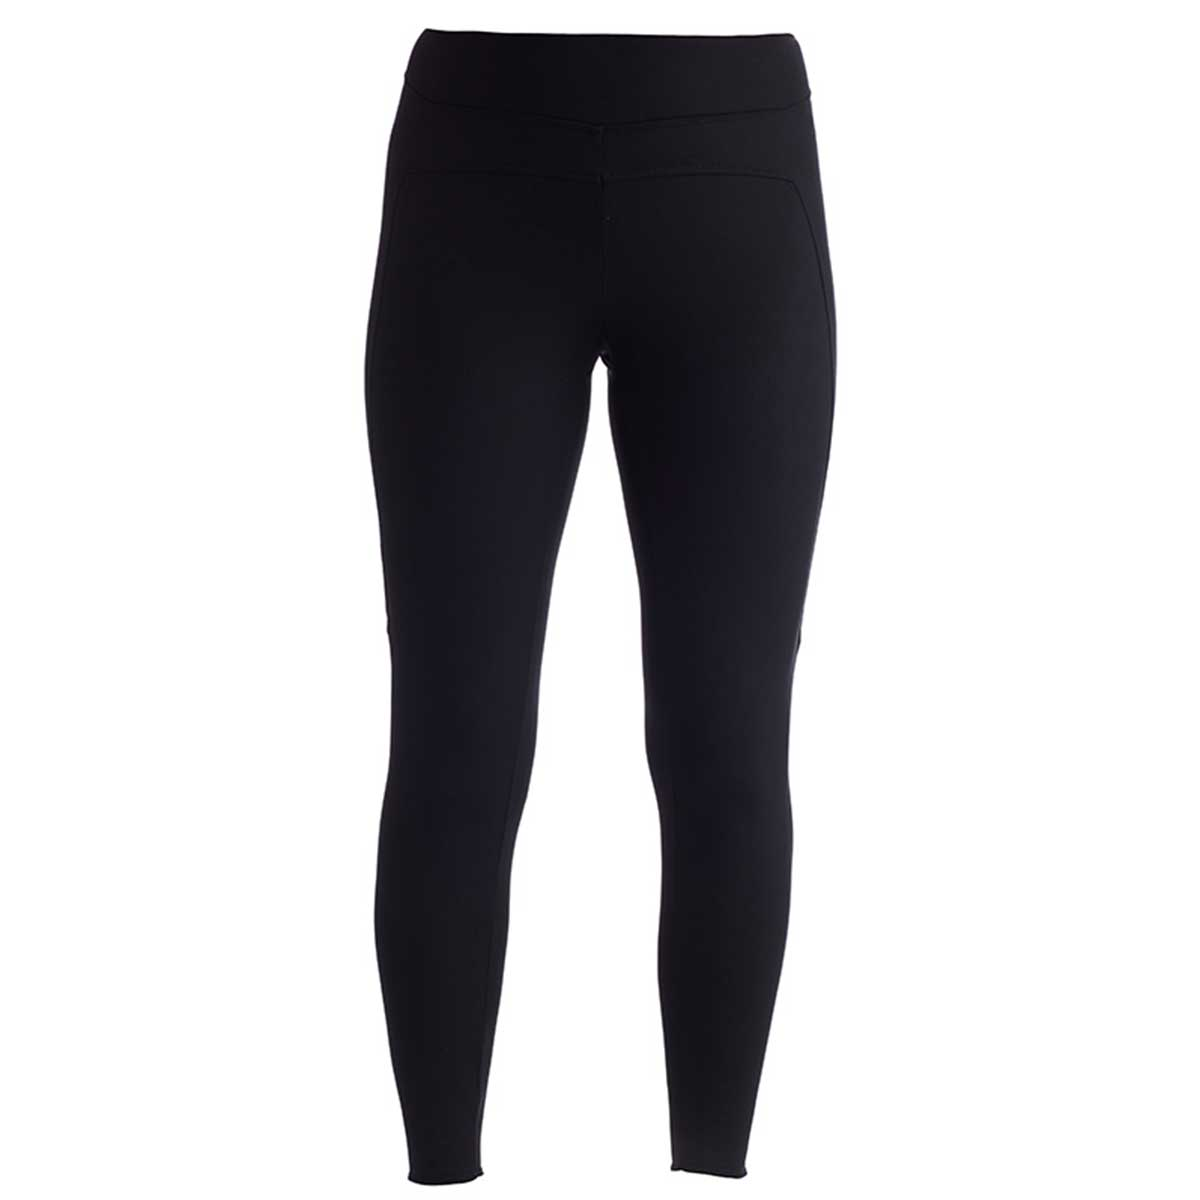 NILS Lucy legging in Black